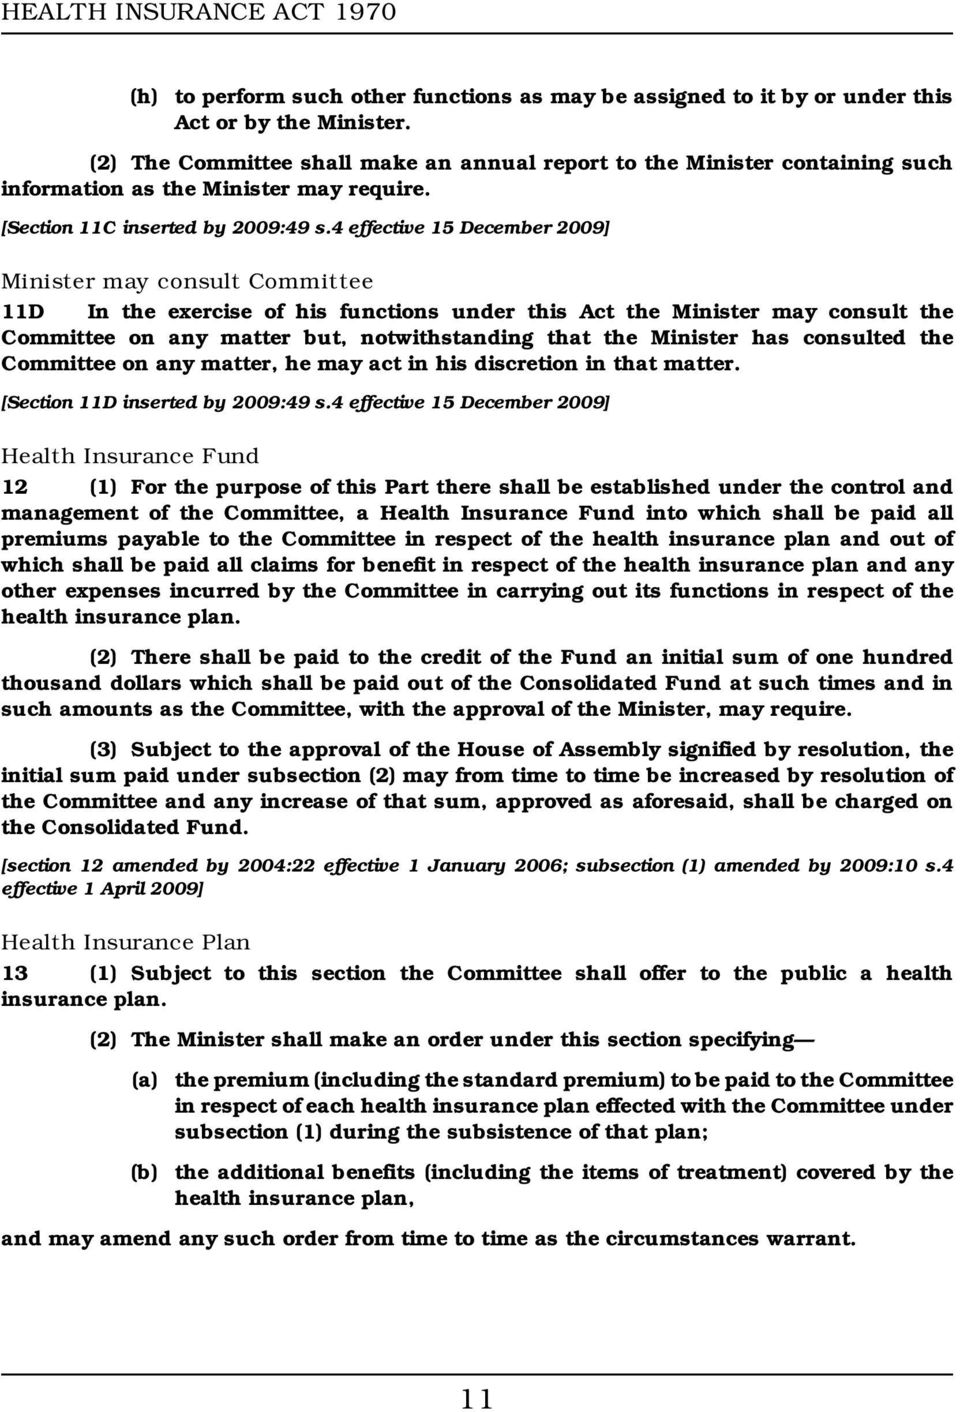 4 effective 15 December 2009] Minister may consult Committee 11D In the exercise of his functions under this Act the Minister may consult the Committee on any matter but, notwithstanding that the